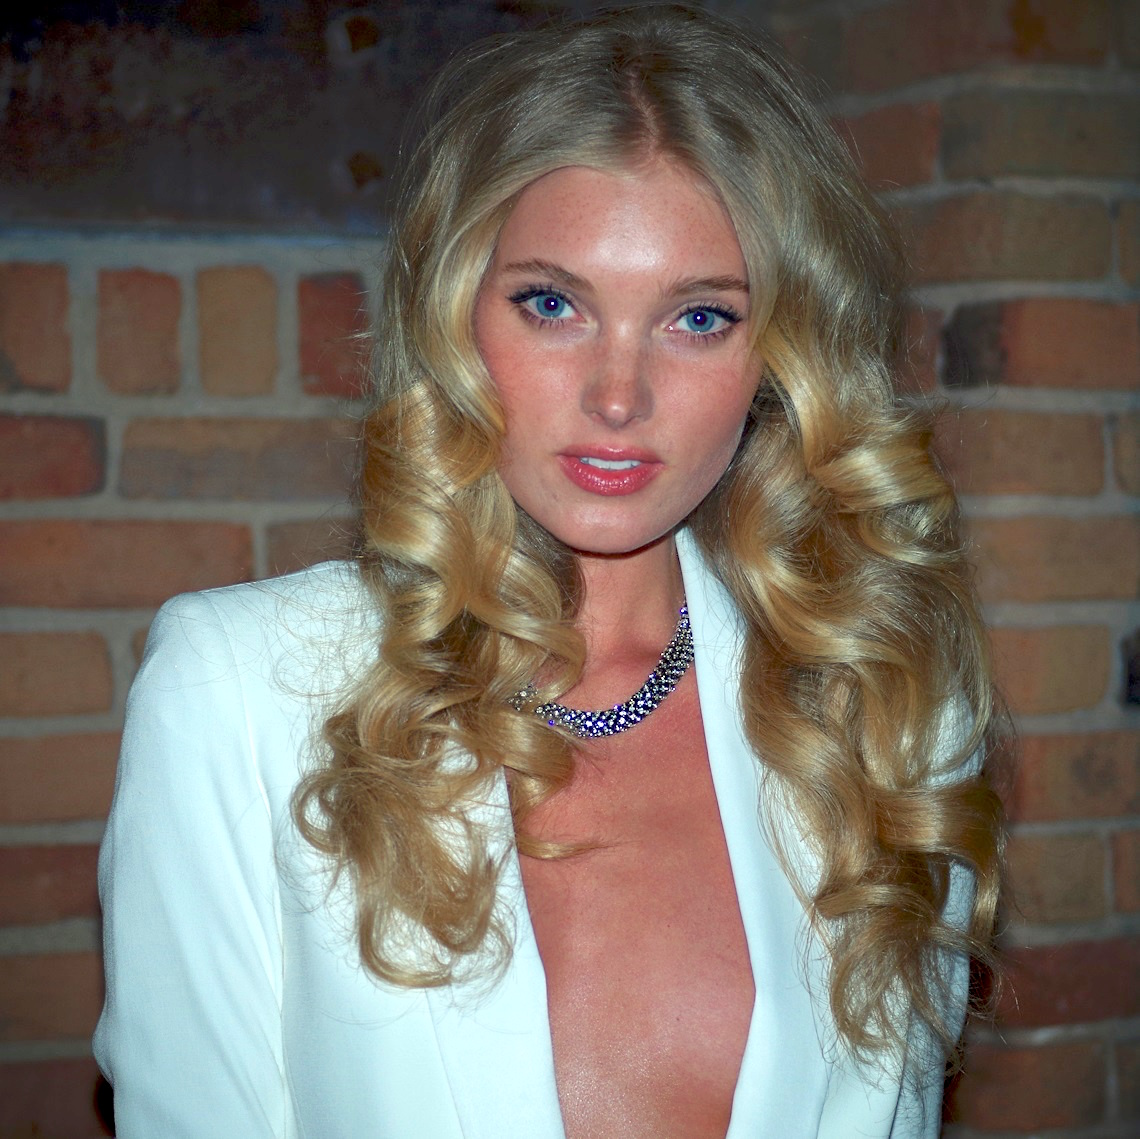 The 31-year old daughter of father Pål Hosk and mother Marja Hosk Elsa Hosk in 2020 photo. Elsa Hosk earned a million dollar salary - leaving the net worth at 1.5 million in 2020